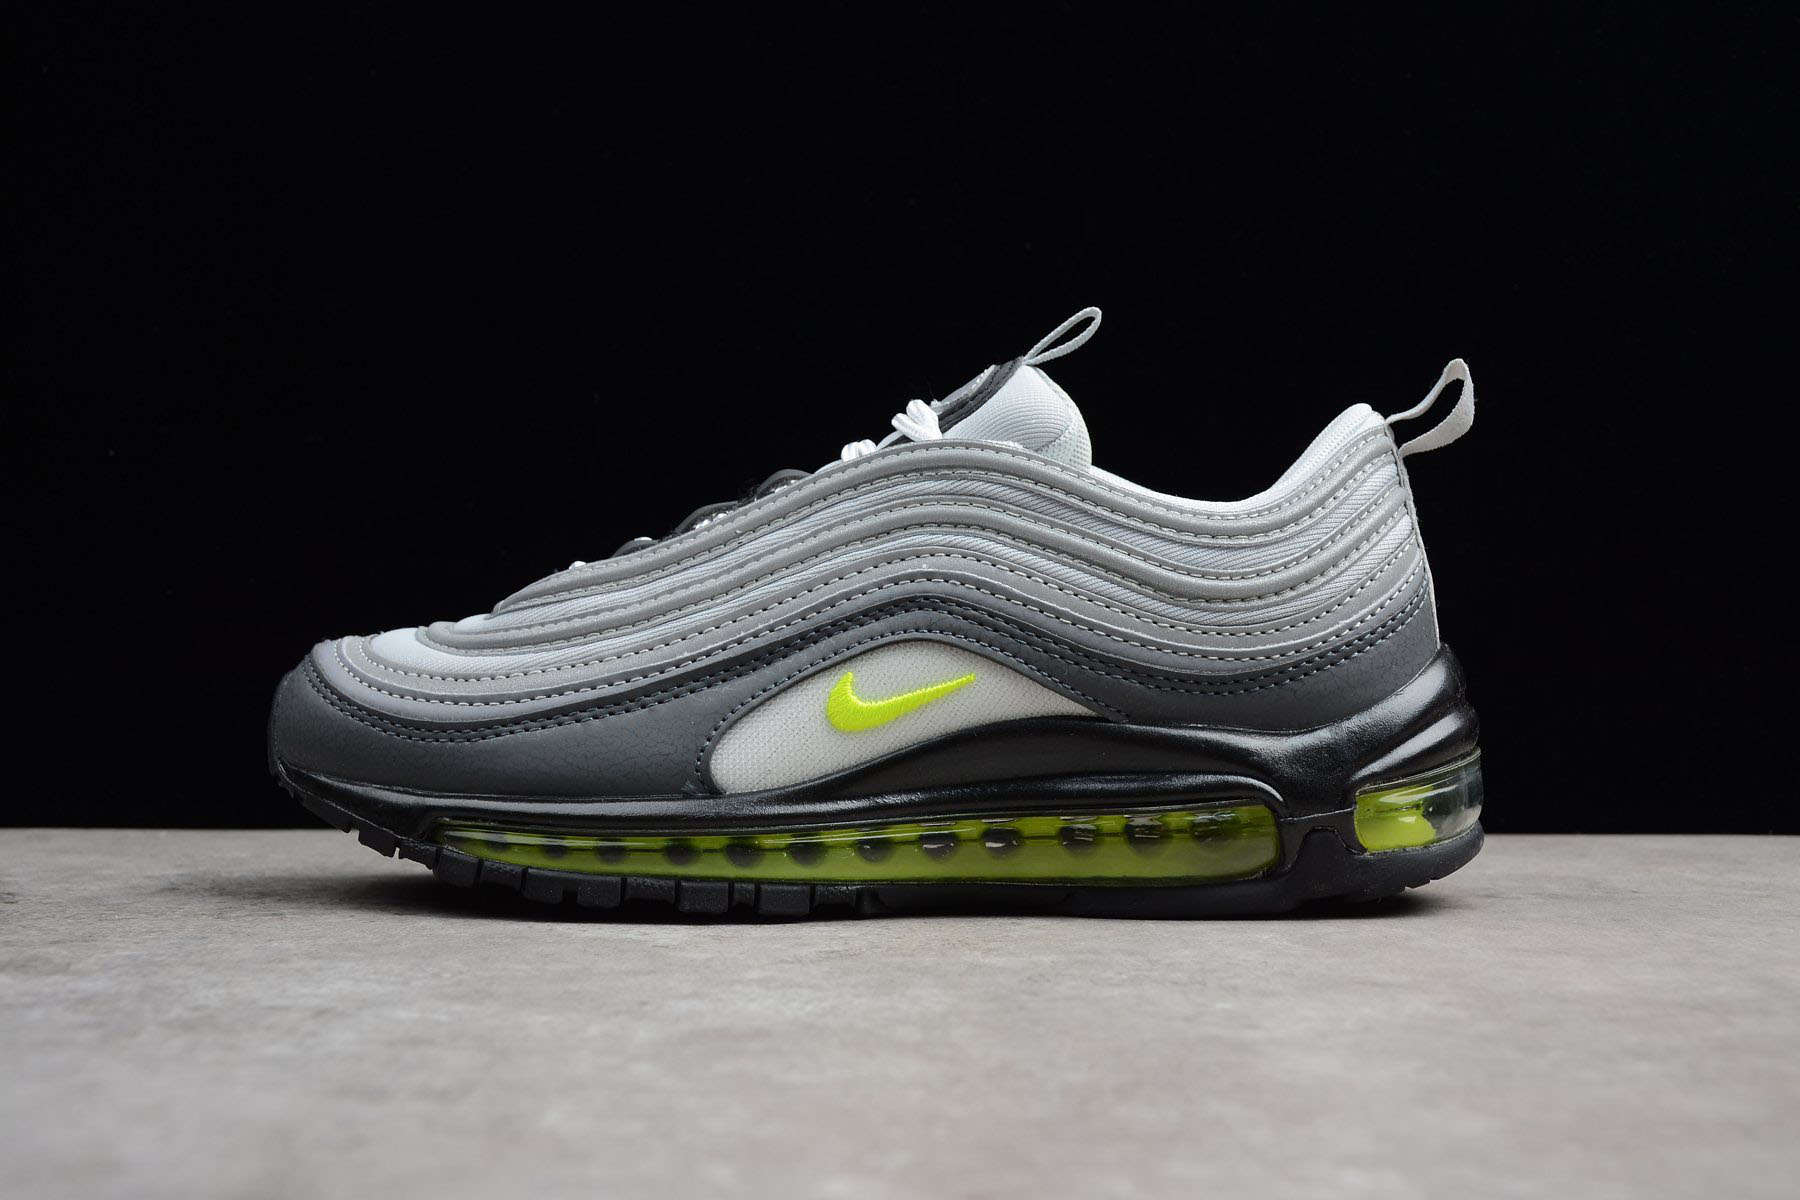 Nike Air Max 97 Neon Dark Grey/Volt-Stealth-Pure Platinum 921733-003